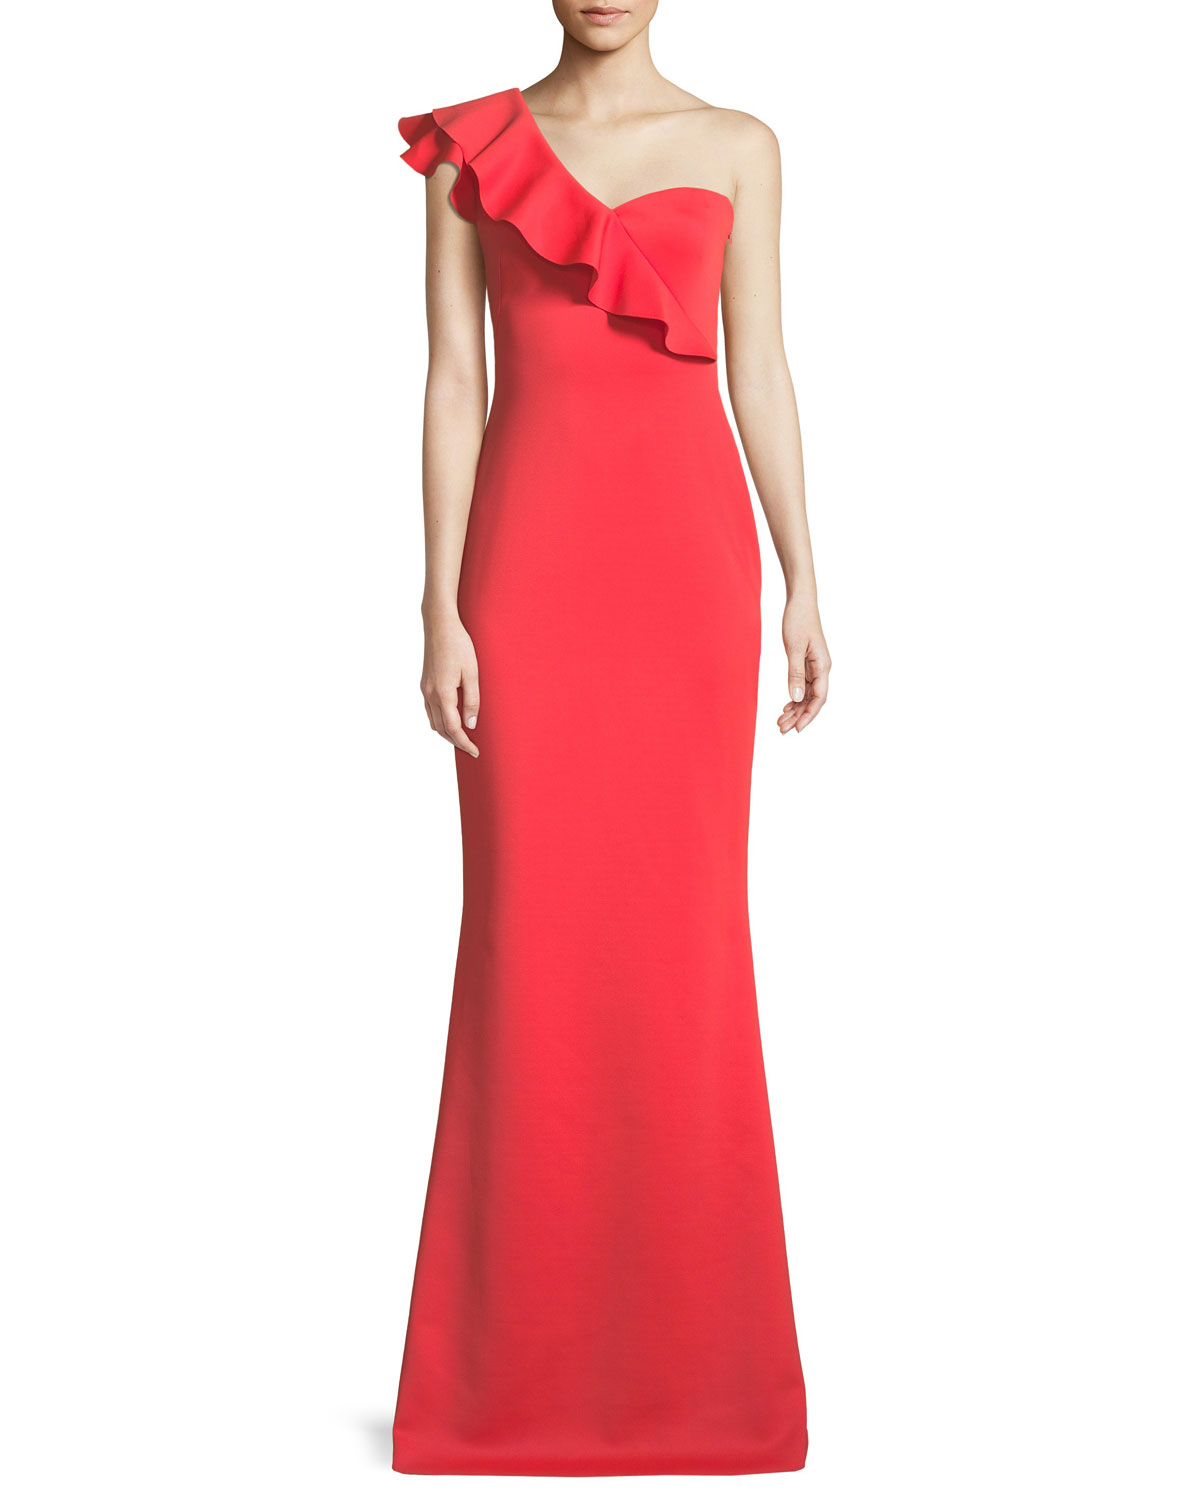 Black Halo Carmel One-Shoulder Ruffle Gown | Neiman Marcus